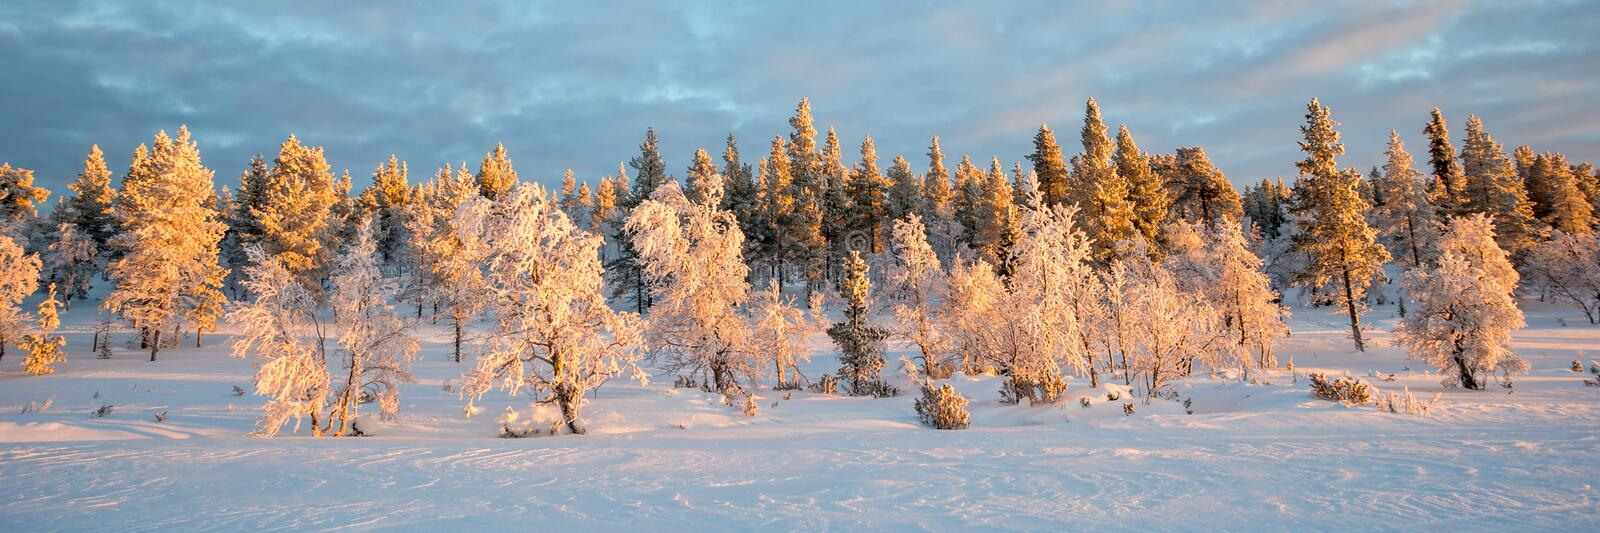 Snowy panoramic landscape, frozen trees in winter in Saariselka, Lapland Finland royalty free stock photography